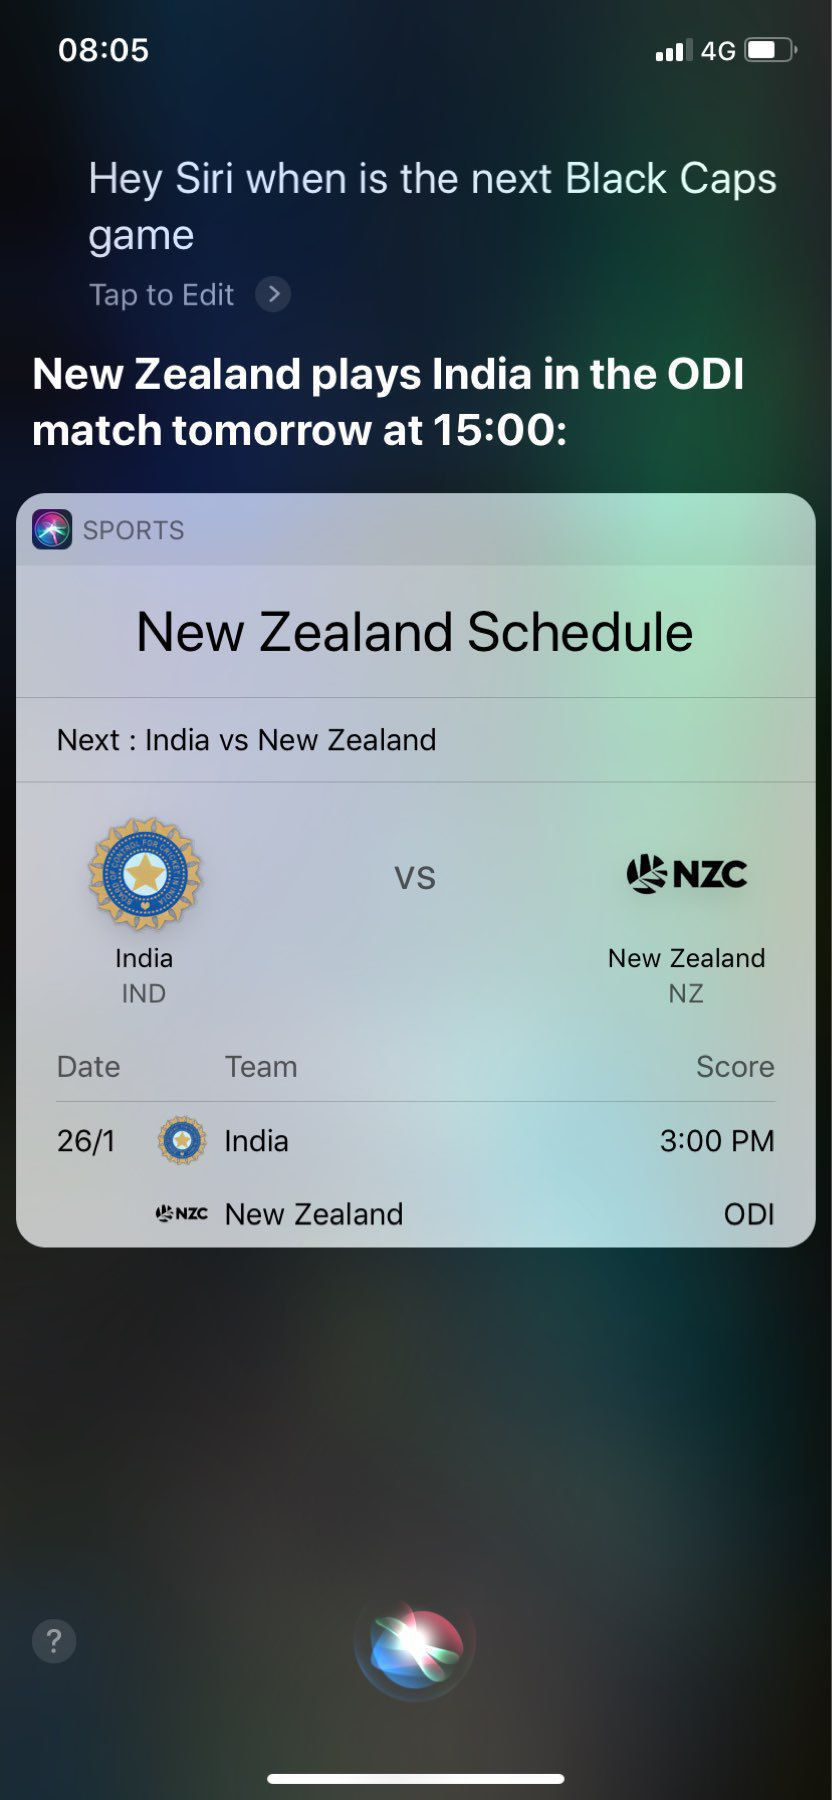 A Siri information screen showing details of the next Blackcaps v India ODI game.